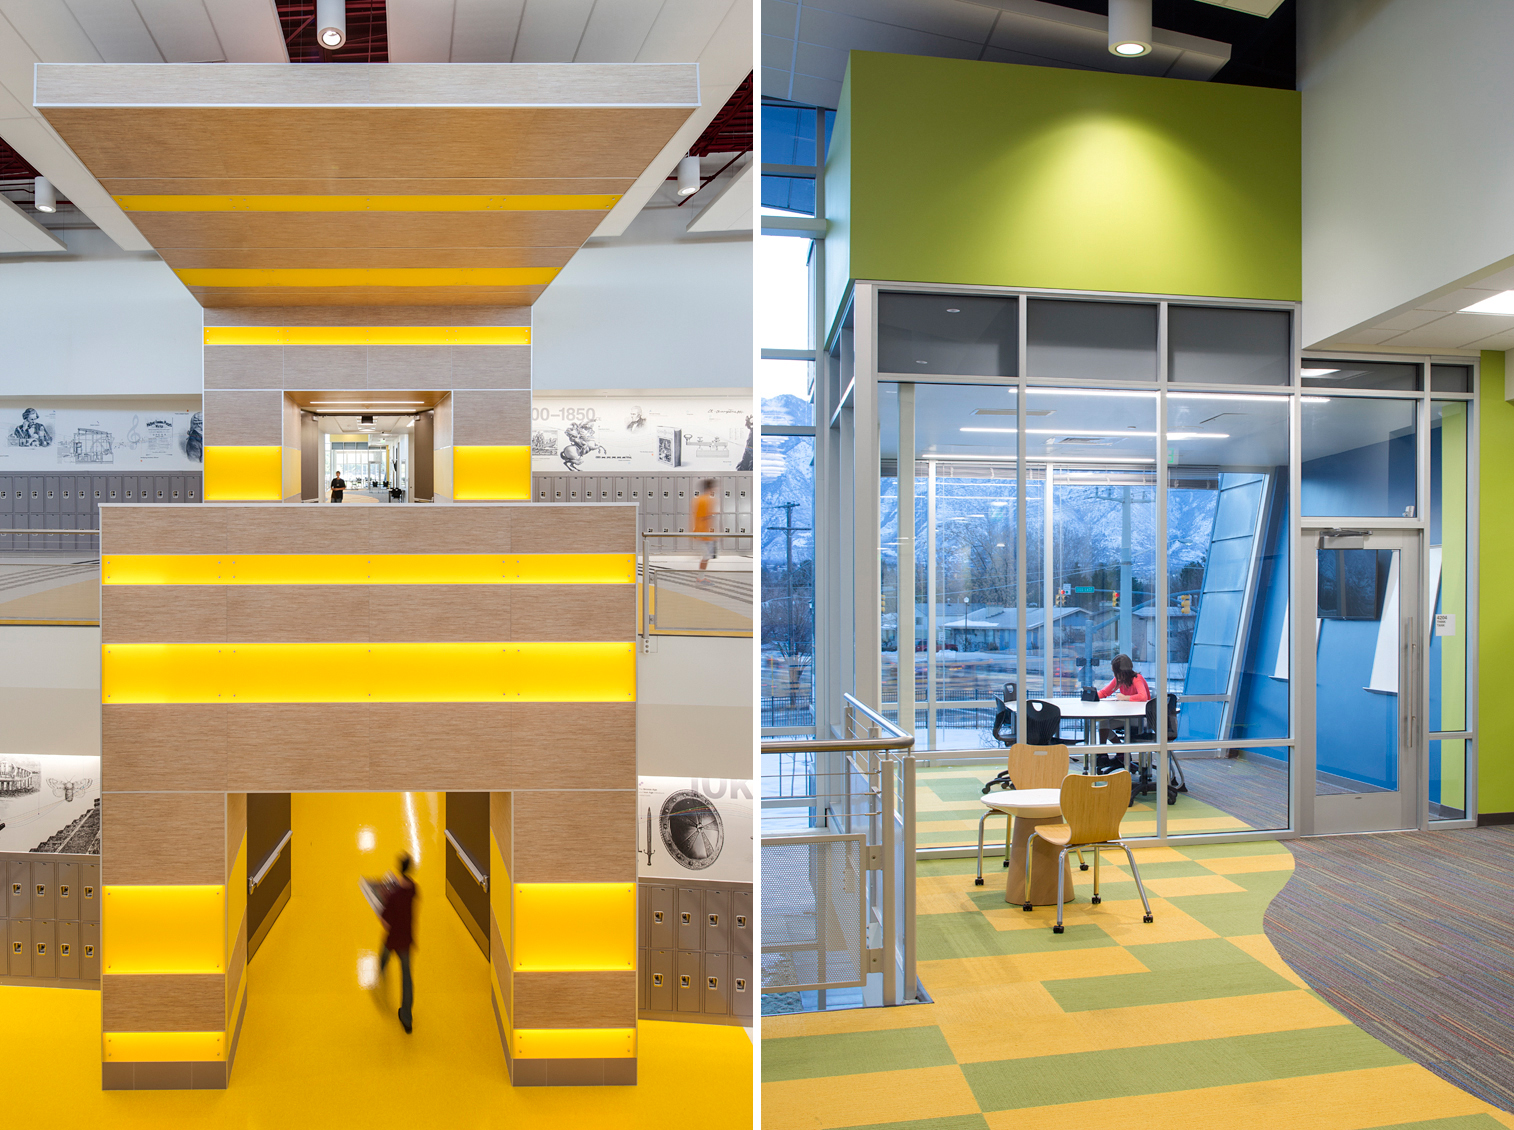 Views of students in motion and studying in colorful common spaces at Mt. Jordan Middle School in Sandy Utah for MHTN Architects / Hogan & Associates